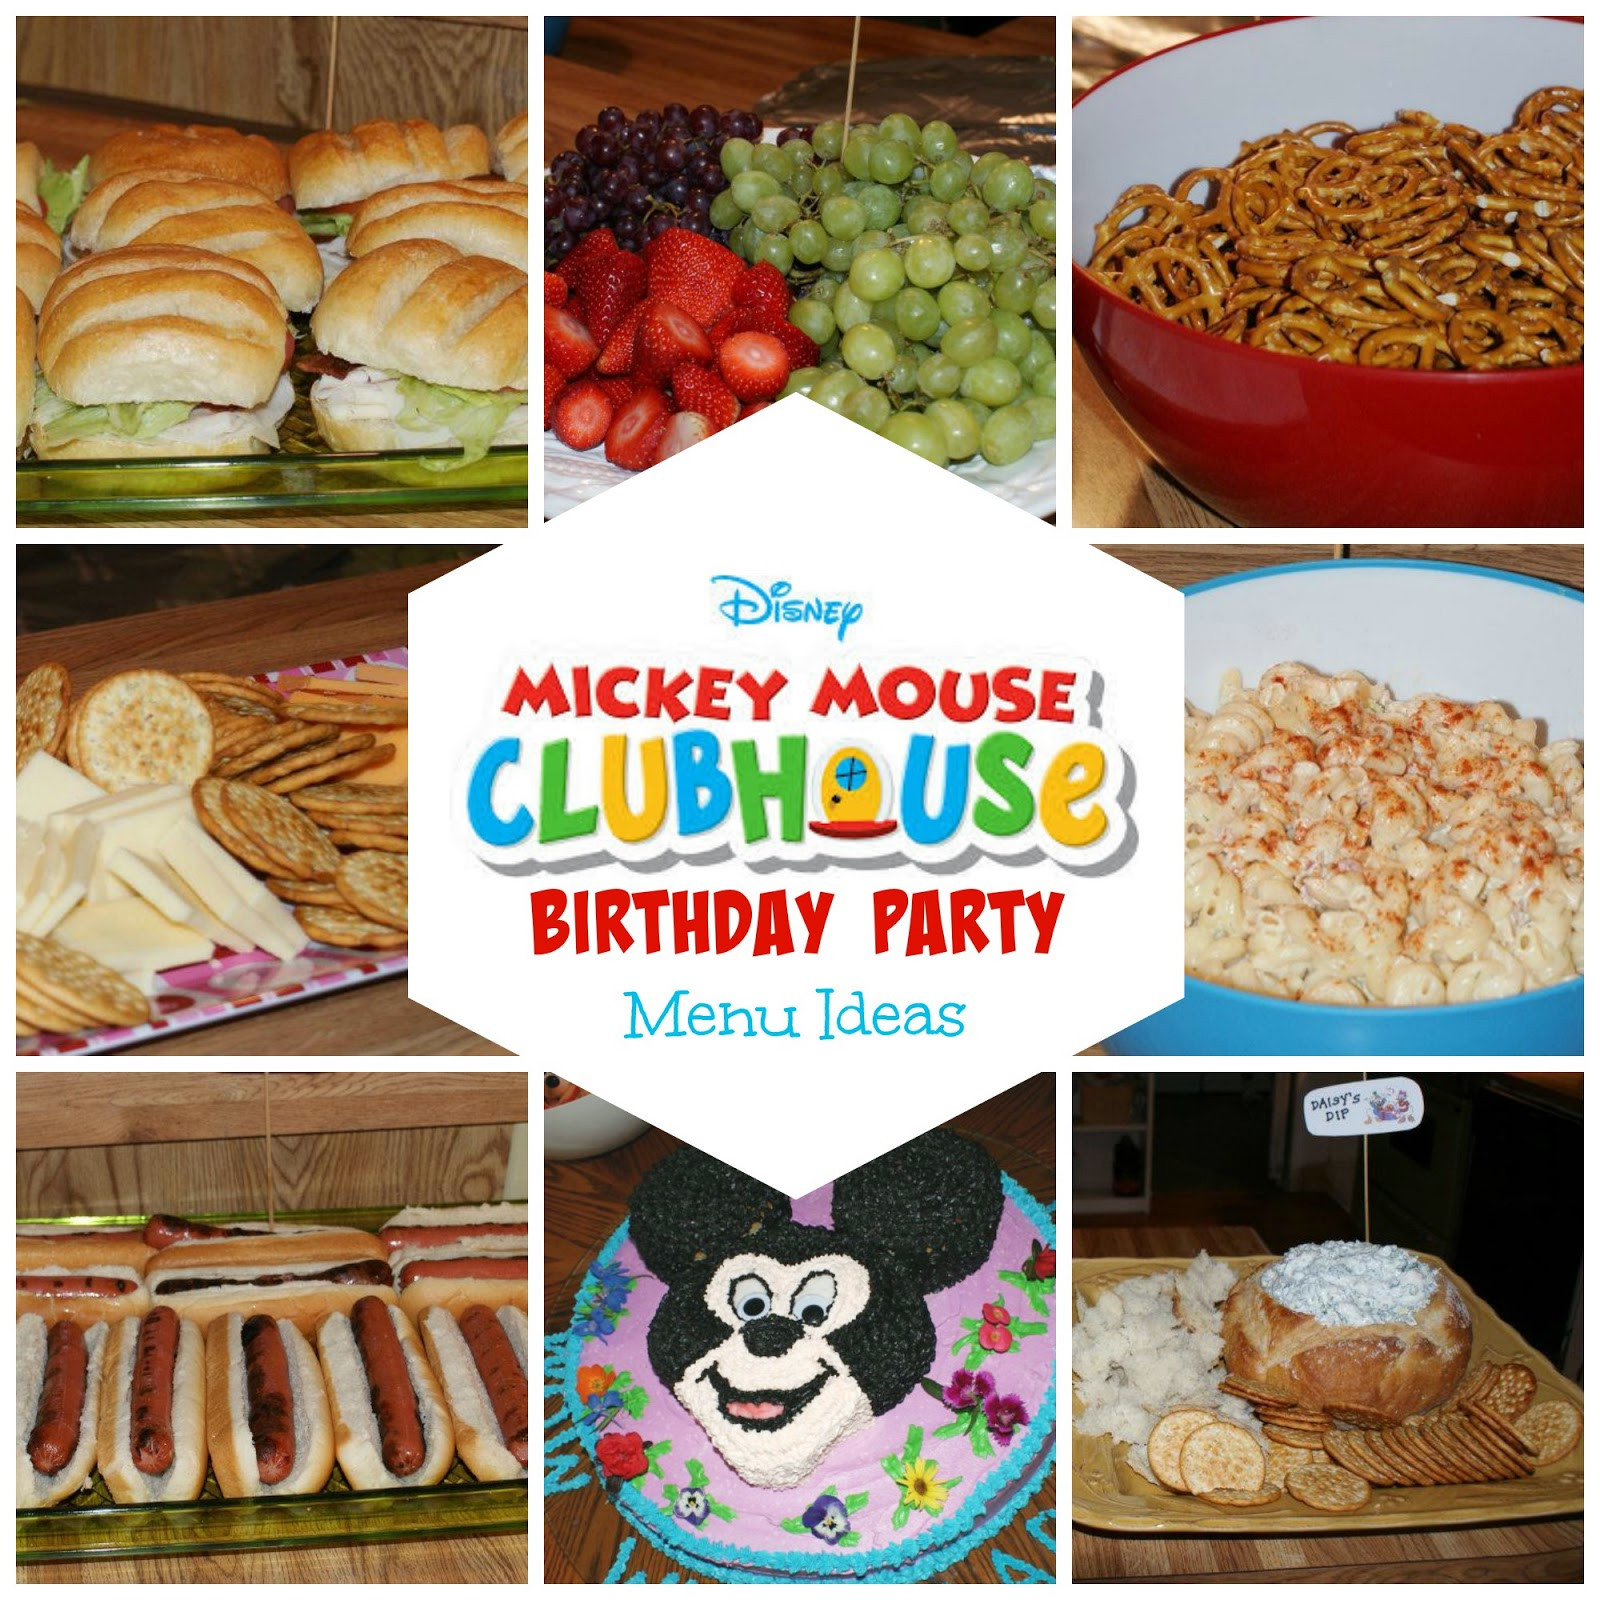 Best ideas about Birthday Party Menu . Save or Pin 8 Mickey Mouse Birthday Party Menu Ideas Now.